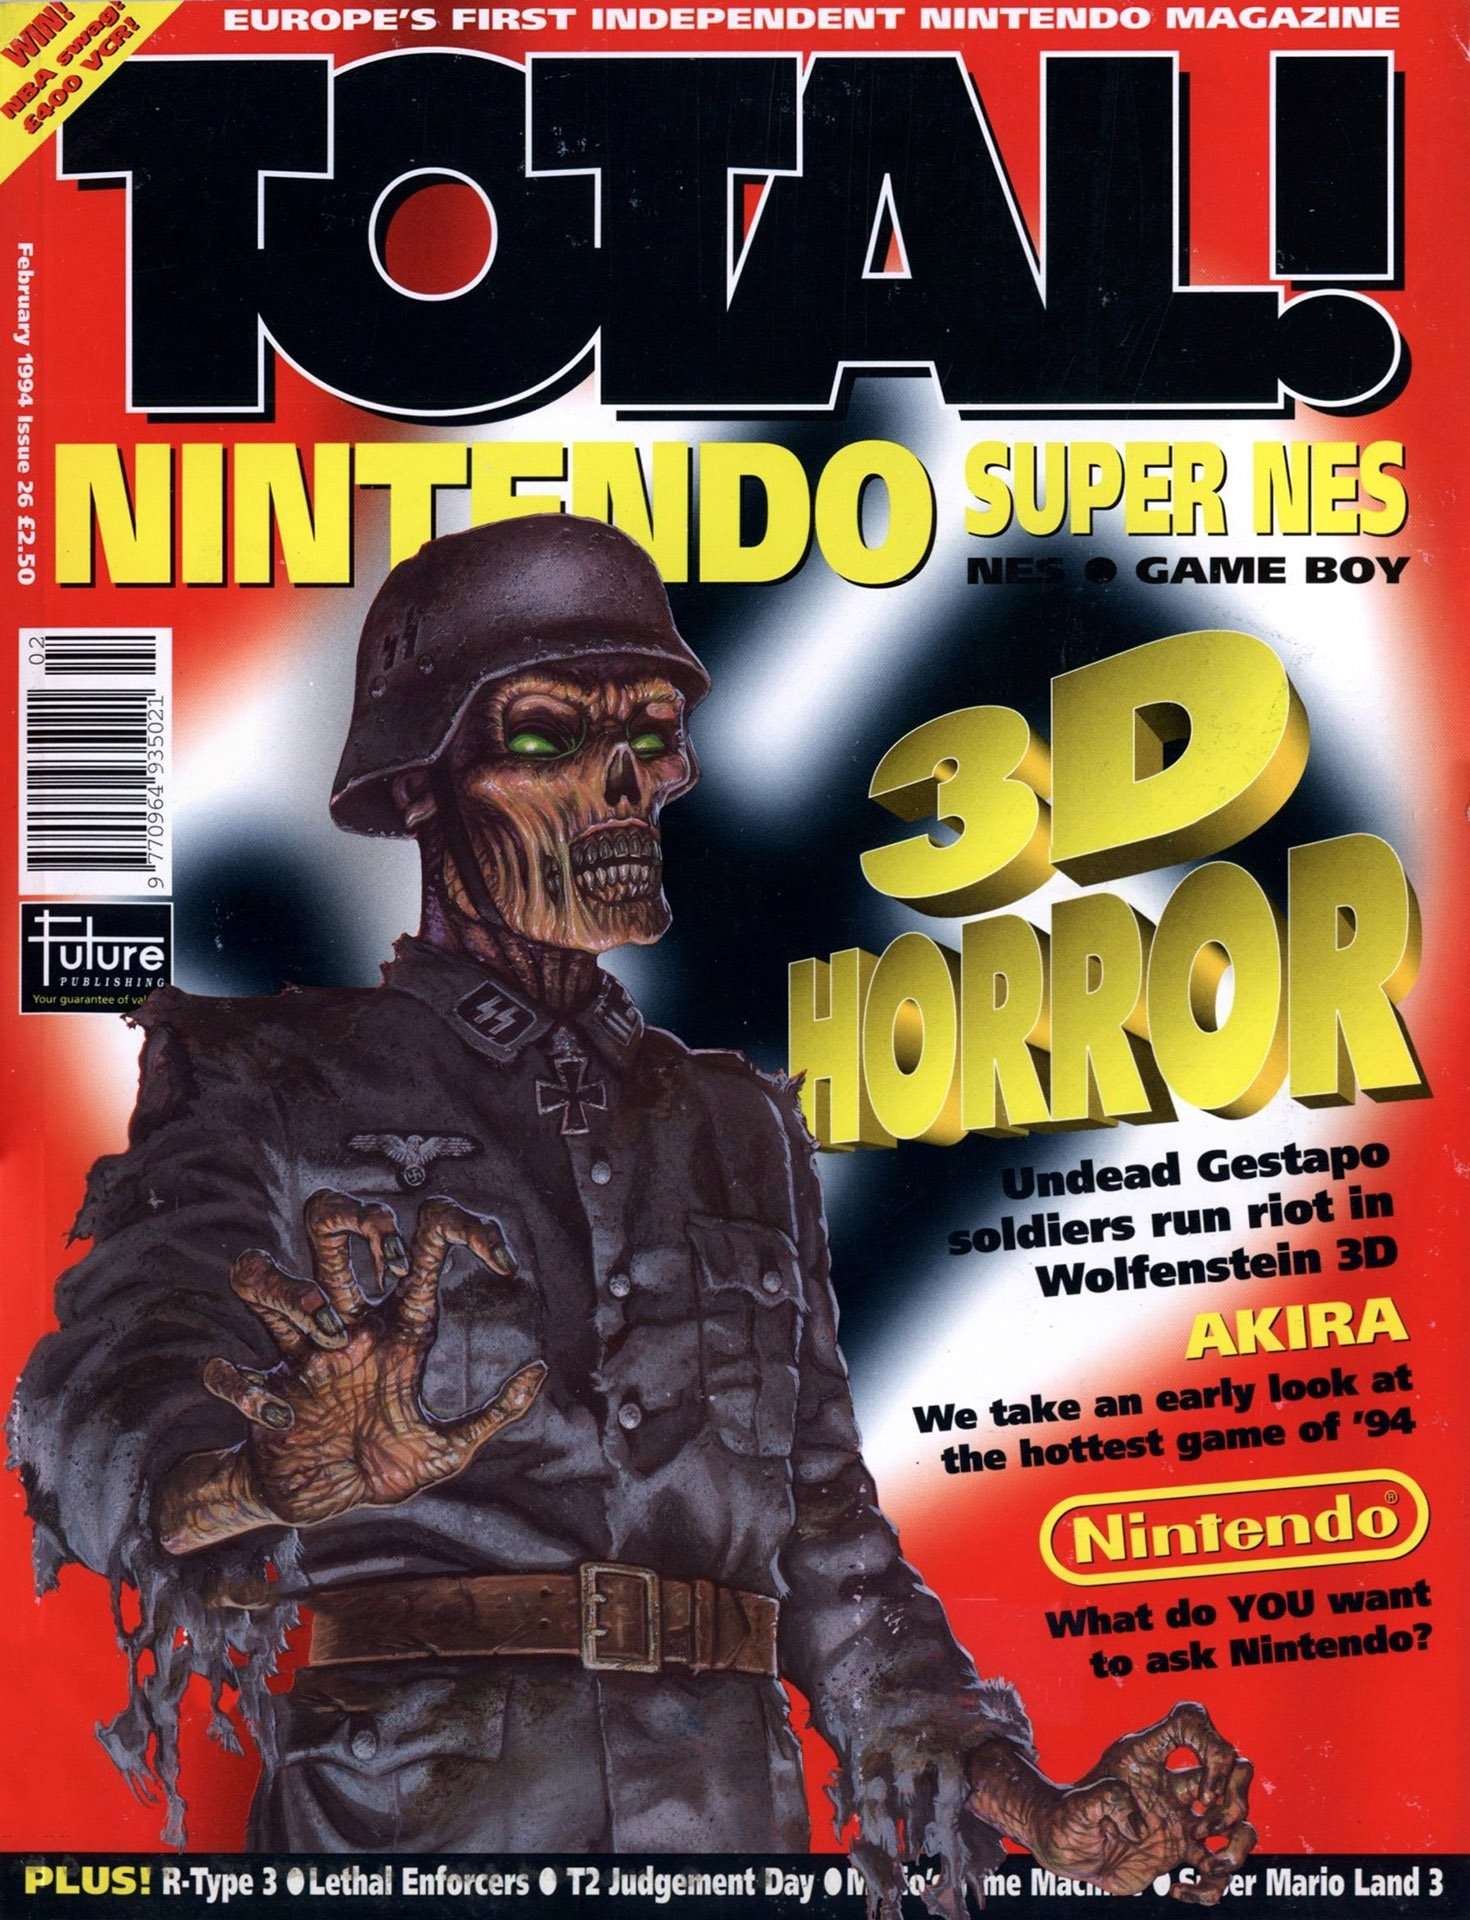 Total! Issue 26 (February 1994)